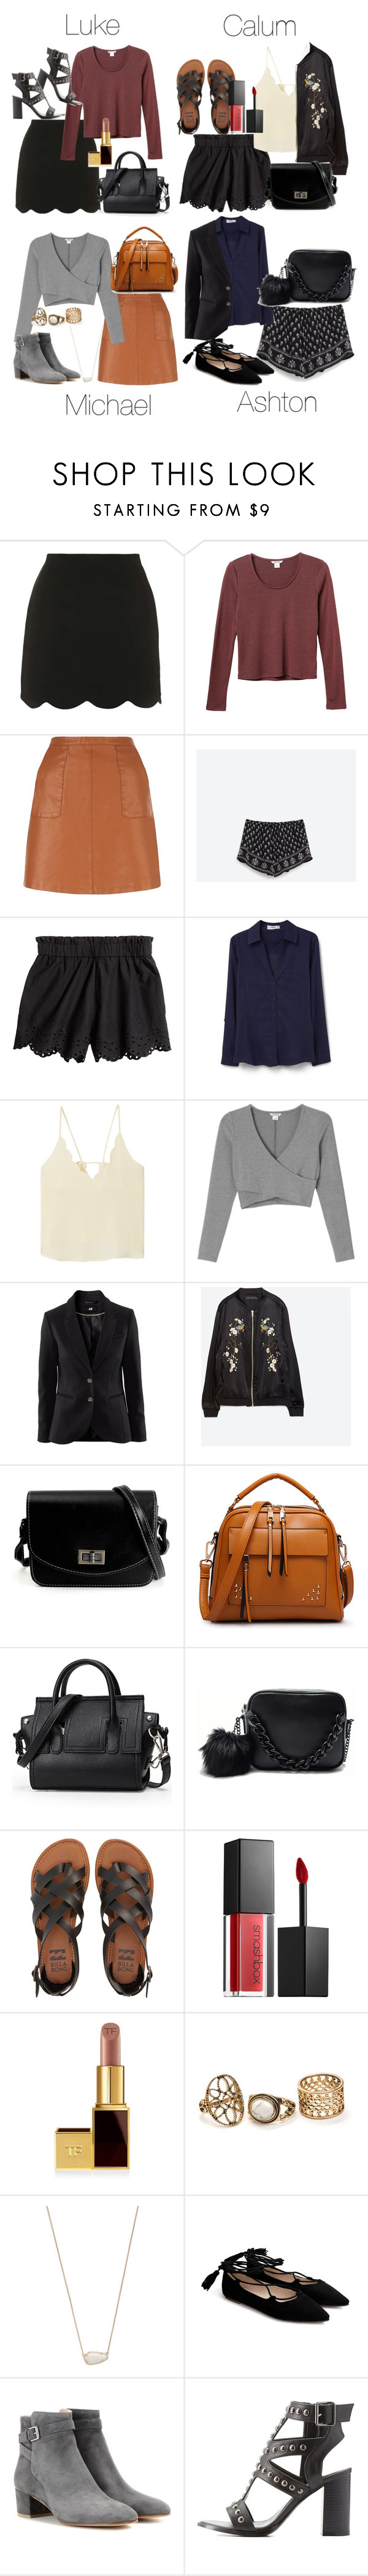 """""""Semi-Formal Post-Wedding Event Outfits"""" by fivesecondsofinspiration ❤ liked on Polyvore featuring Topshop, Monki, New Look, MANGO, Chicnova Fashion, Zara, Billabong, Smashbox, Kendra Scott and Gianvito Rossi"""